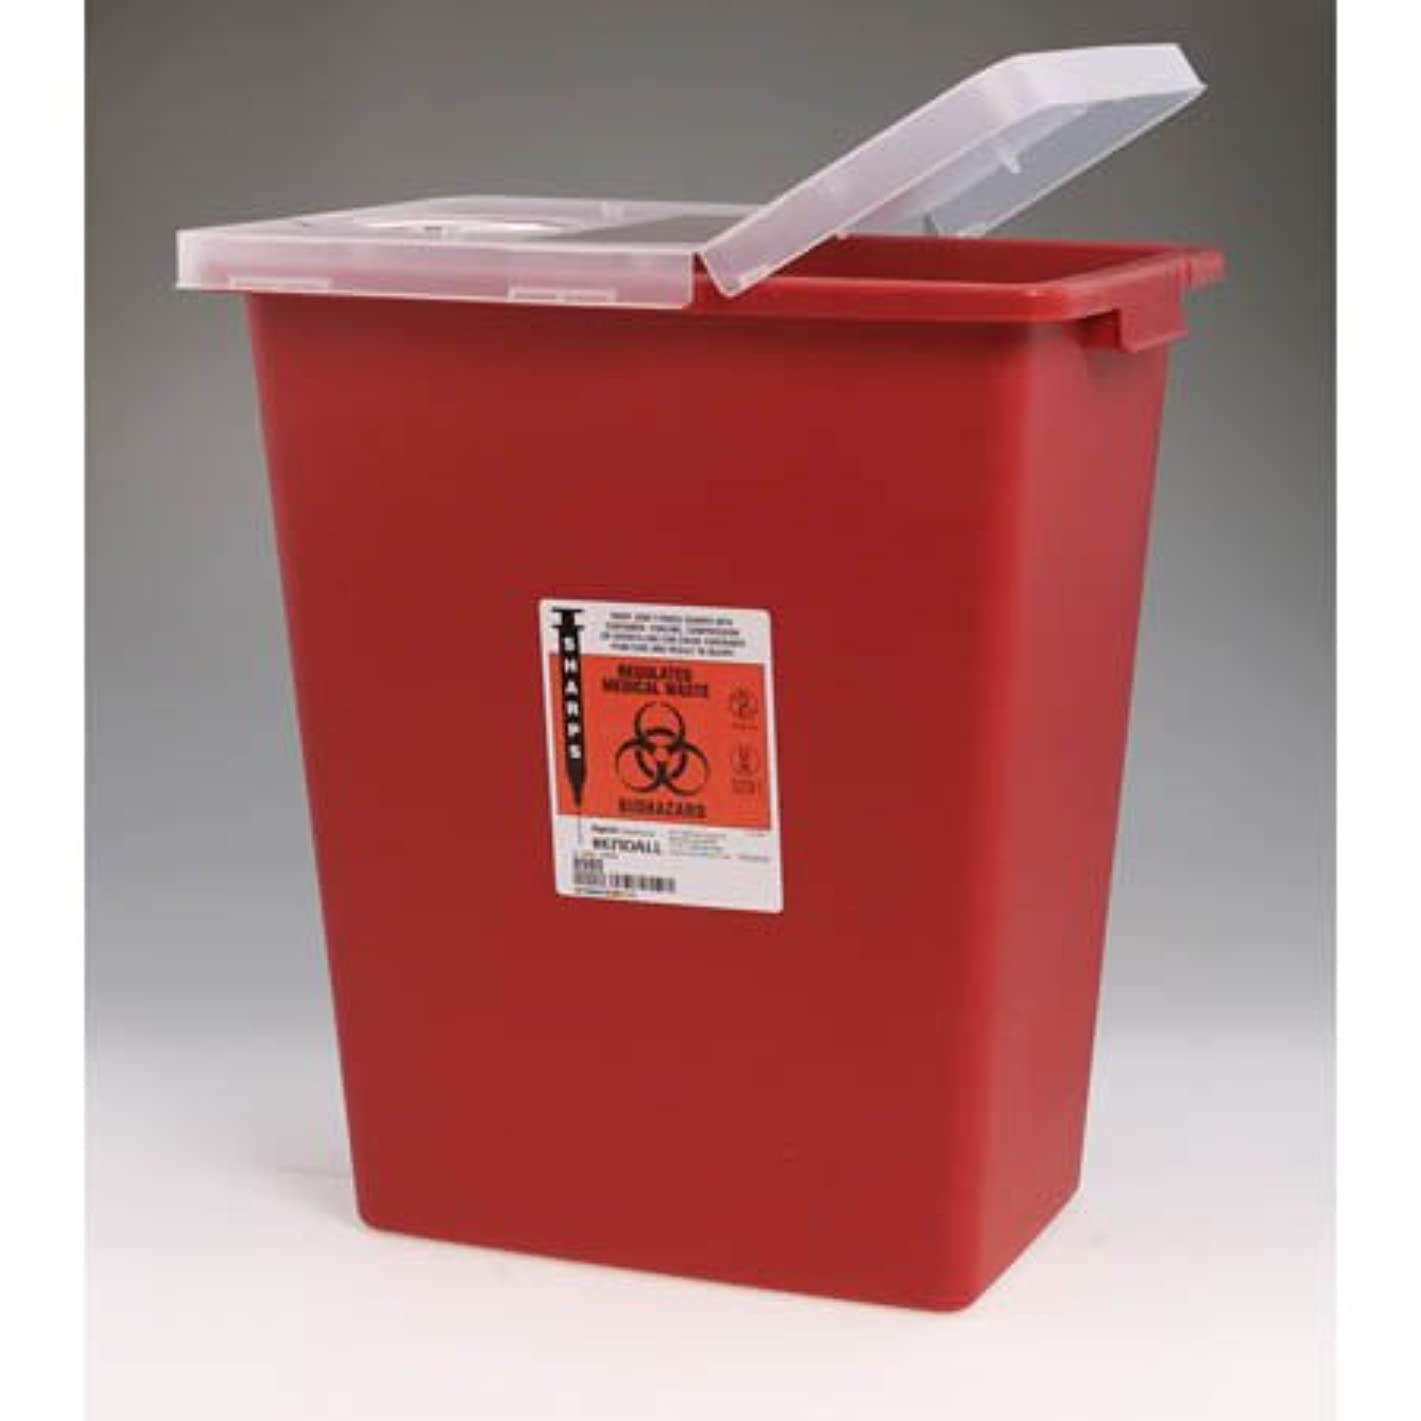 Kendall Volume Sharps Containers, Large